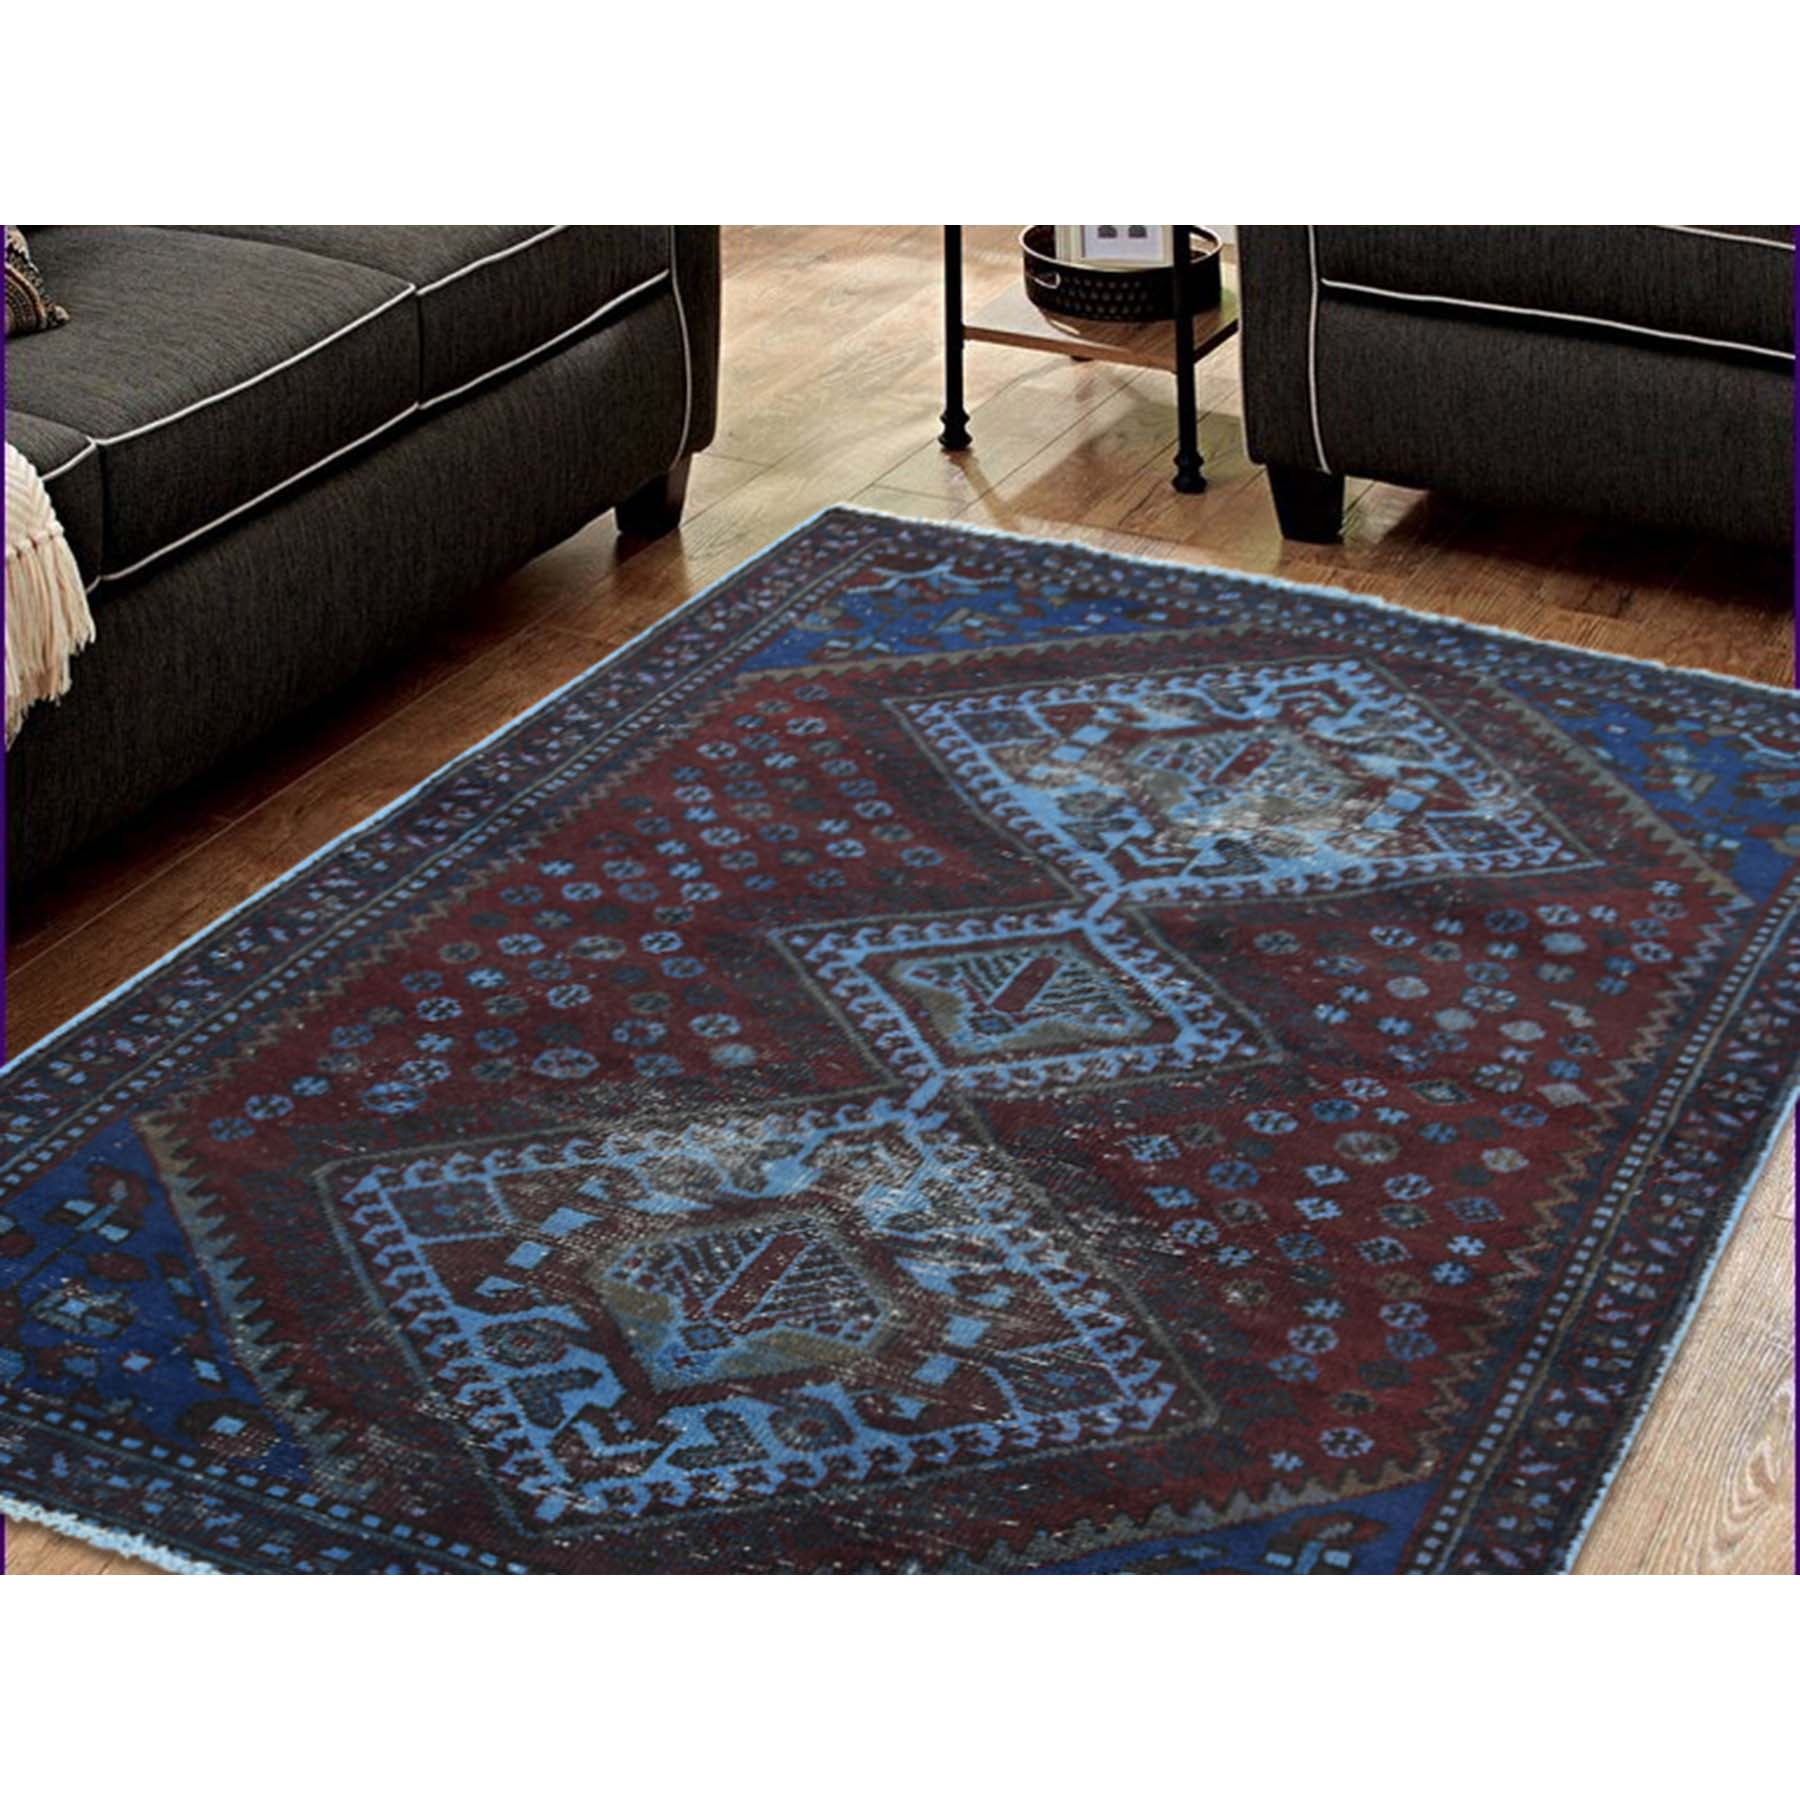 3-4--x4-9-- Hand Knotted Vintage Overdyed Persian Shiraz Oriental Rug